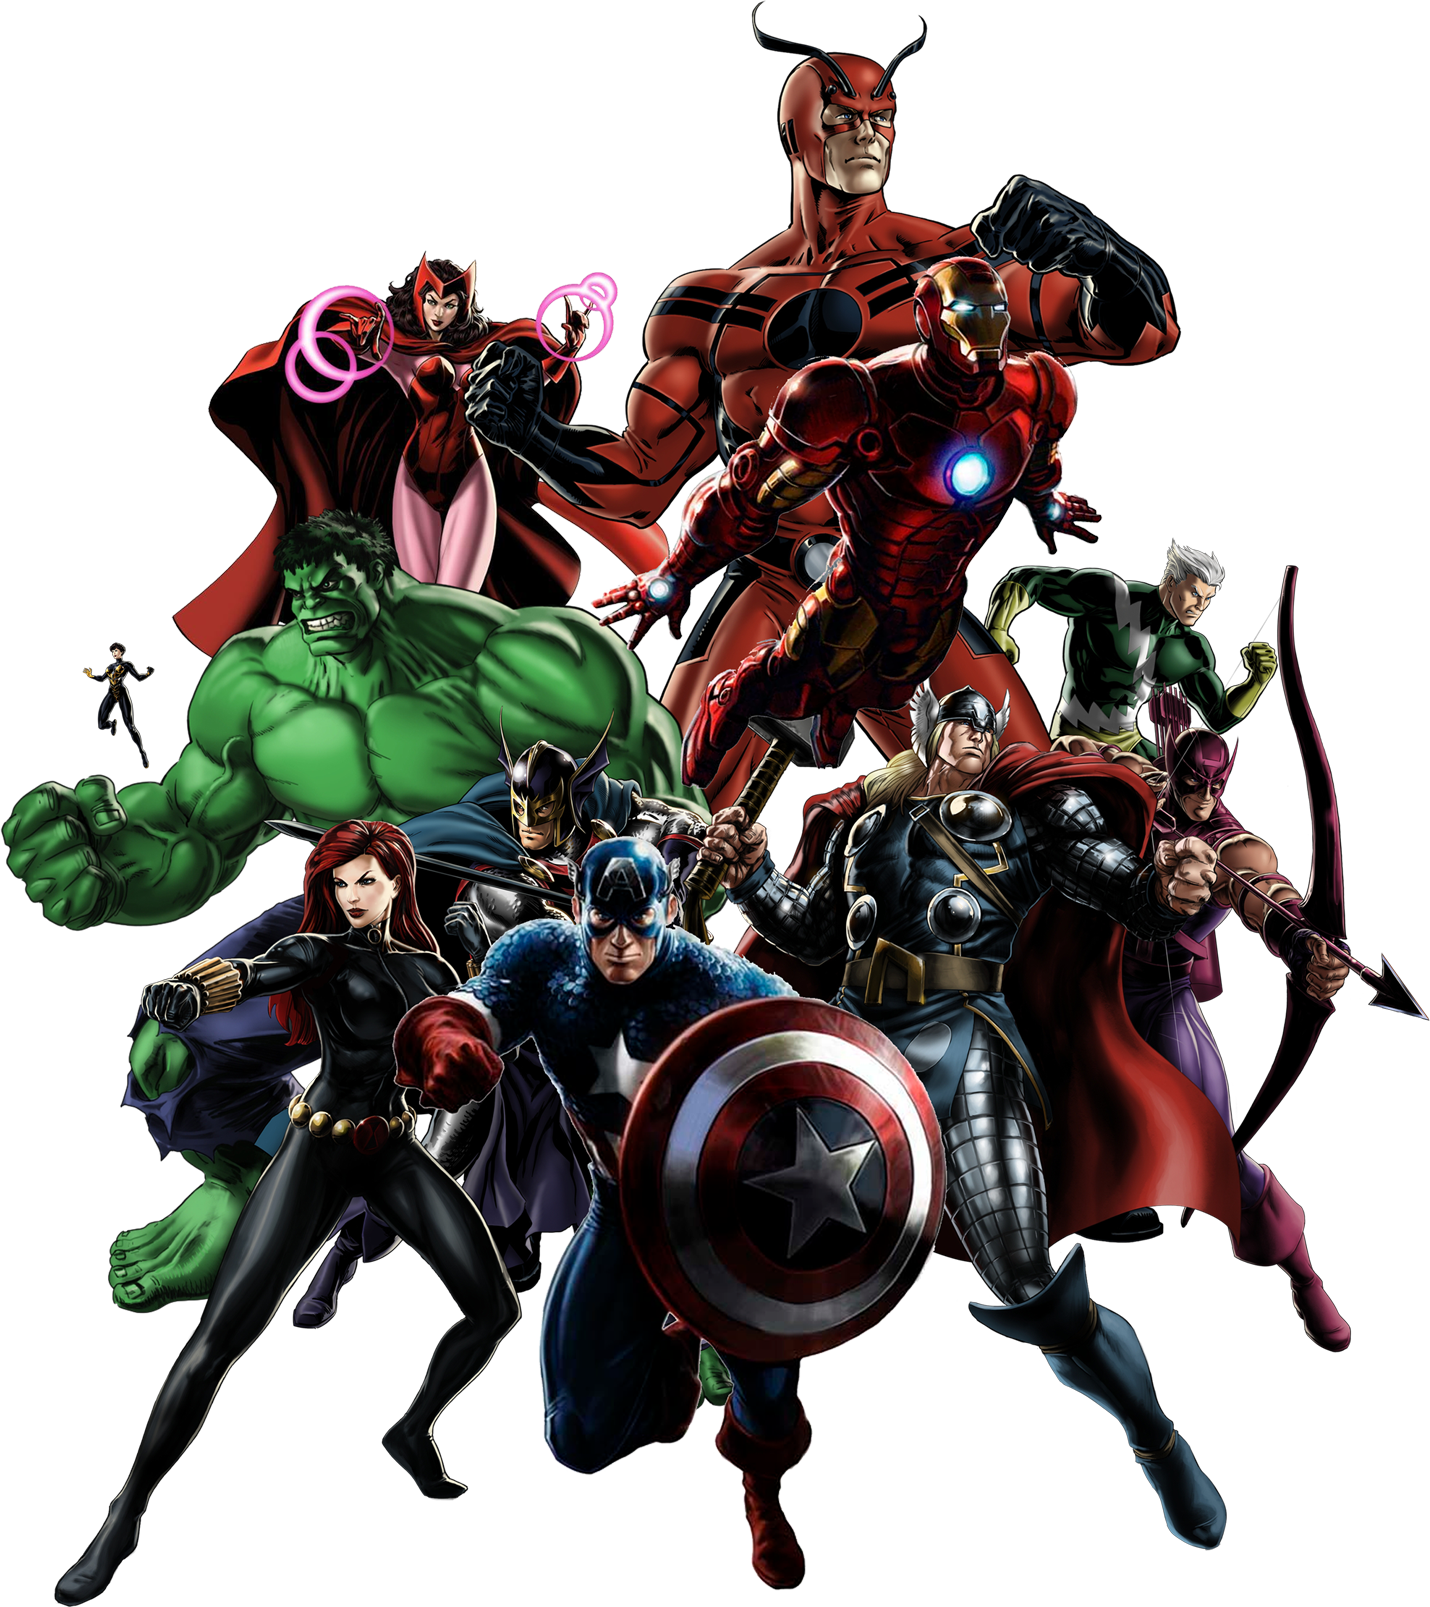 Png images transparent free. Deadpool clipart avengers marvel